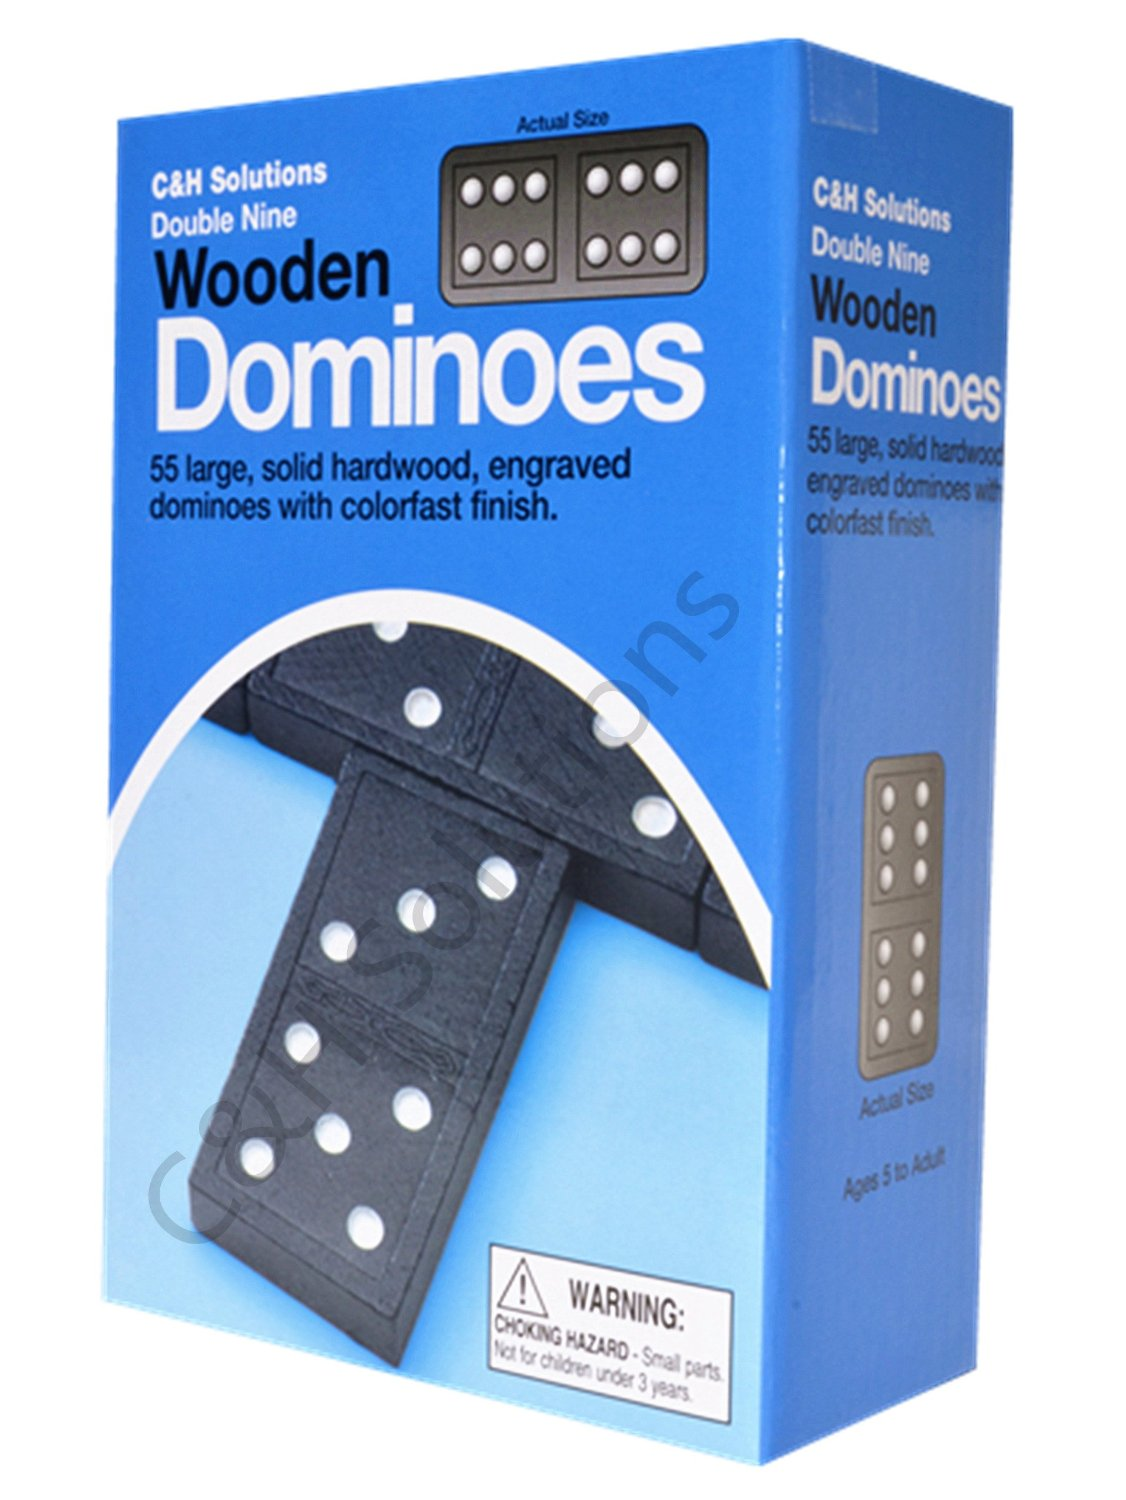 Double 9 Dominoes Black With White Dots Wooden Dominoes 55 PCS